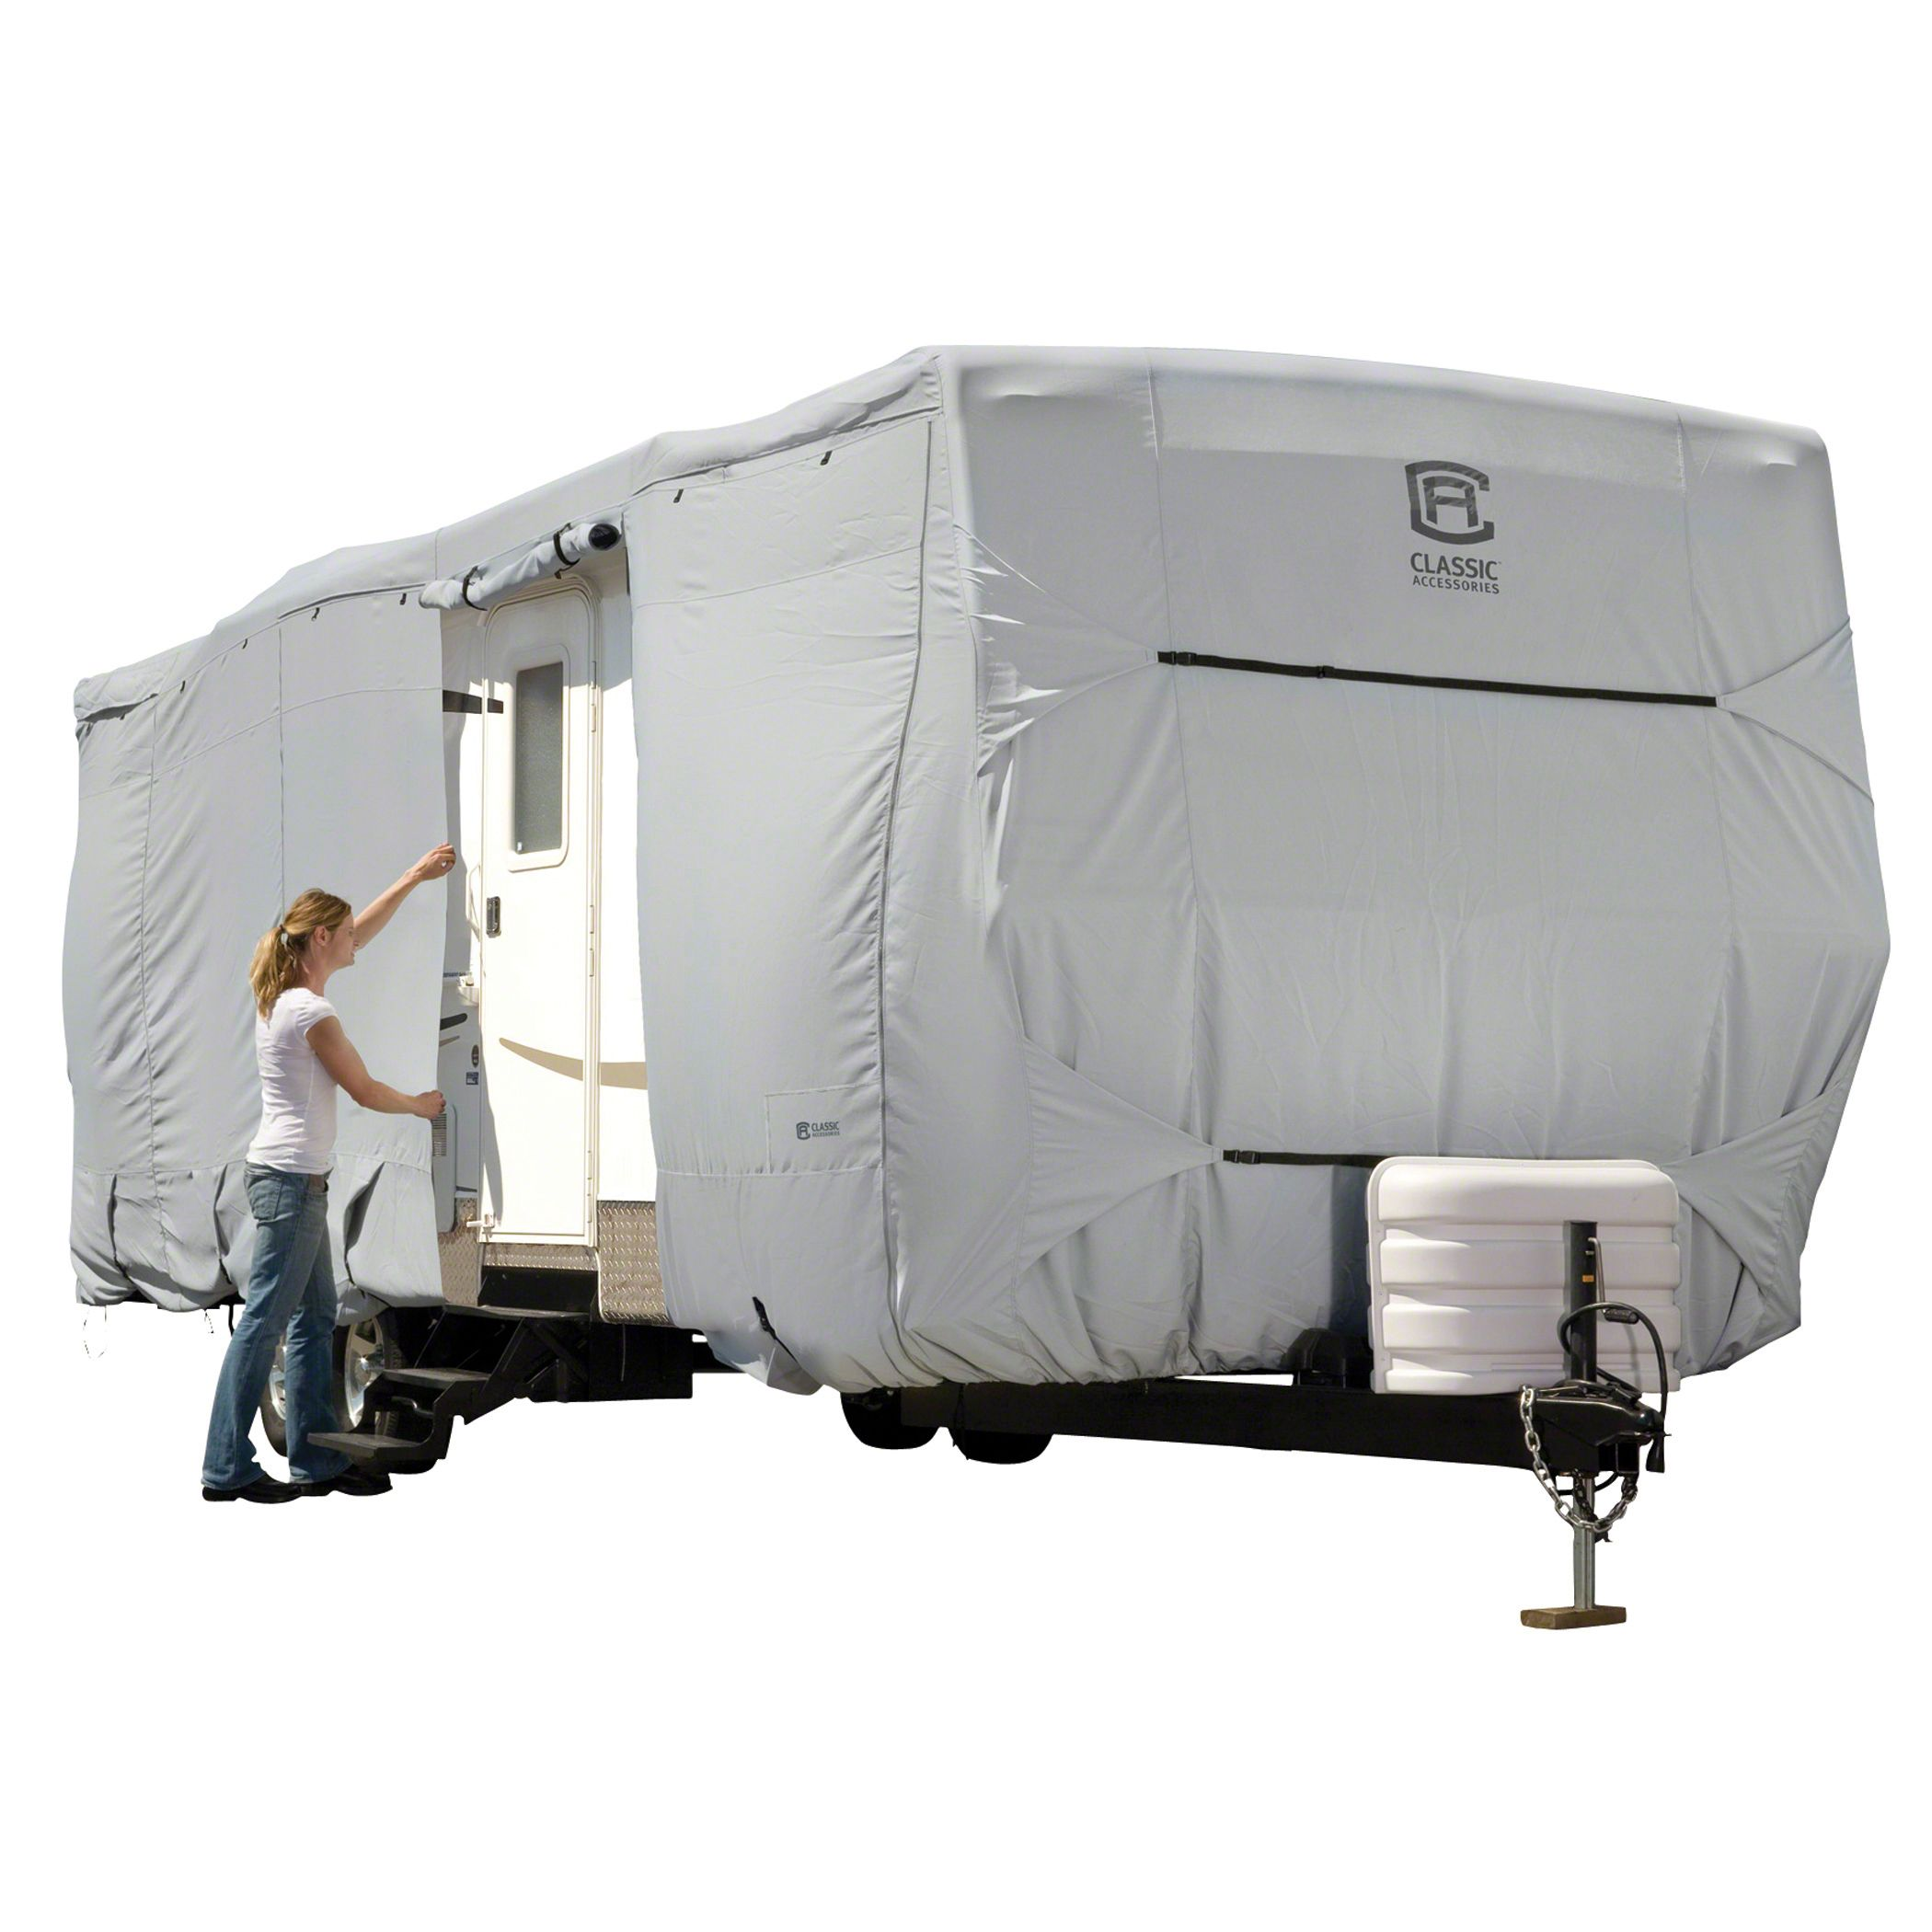 Travel Trailers With Outdoor Kitchens: Perma Pro Travel Trailer RV Covers